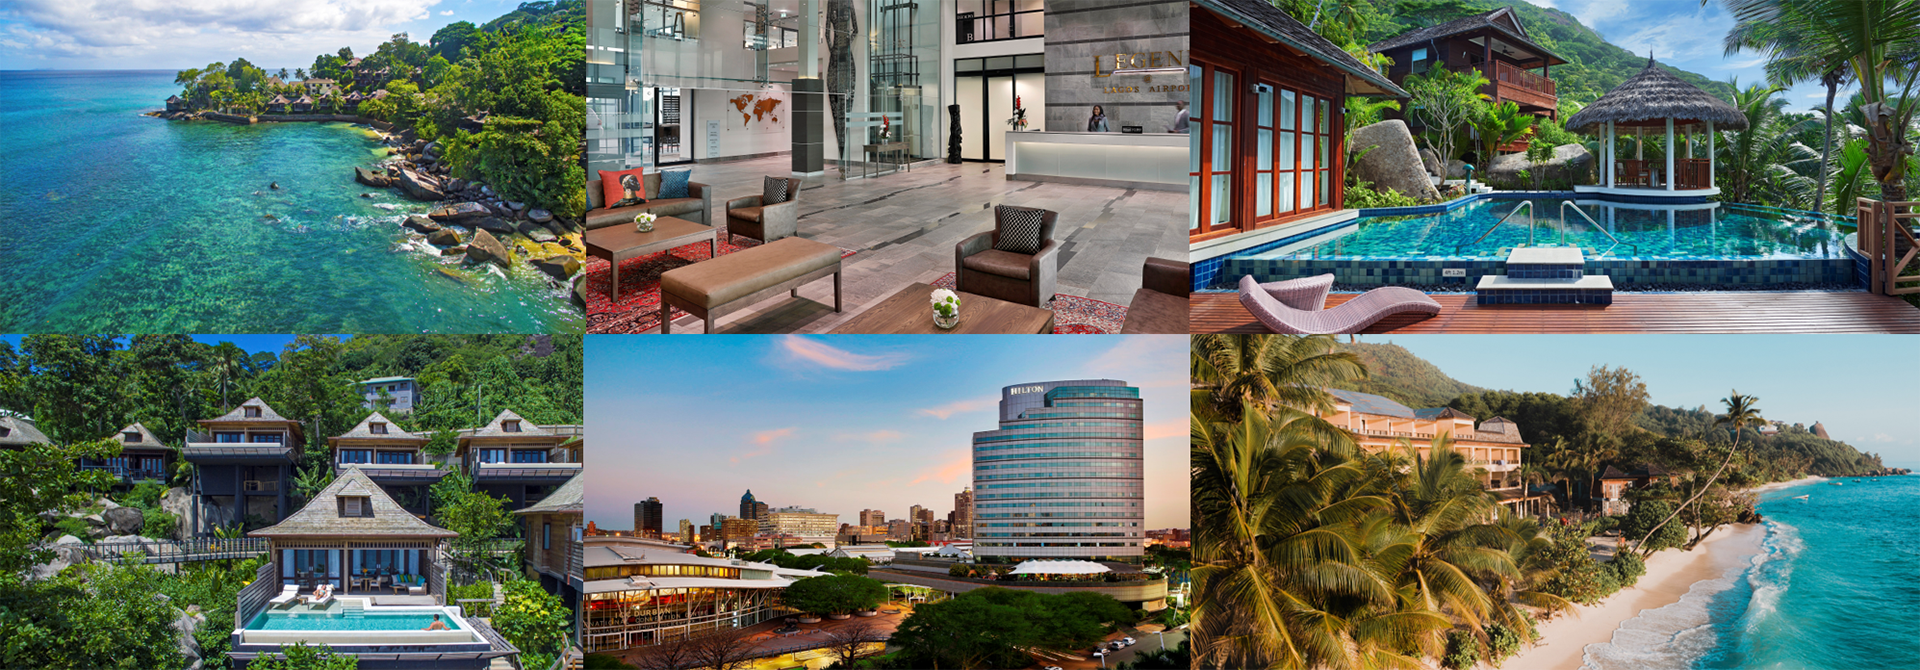 Group focus: Hilton achieves 100-hotel milestone in Africa